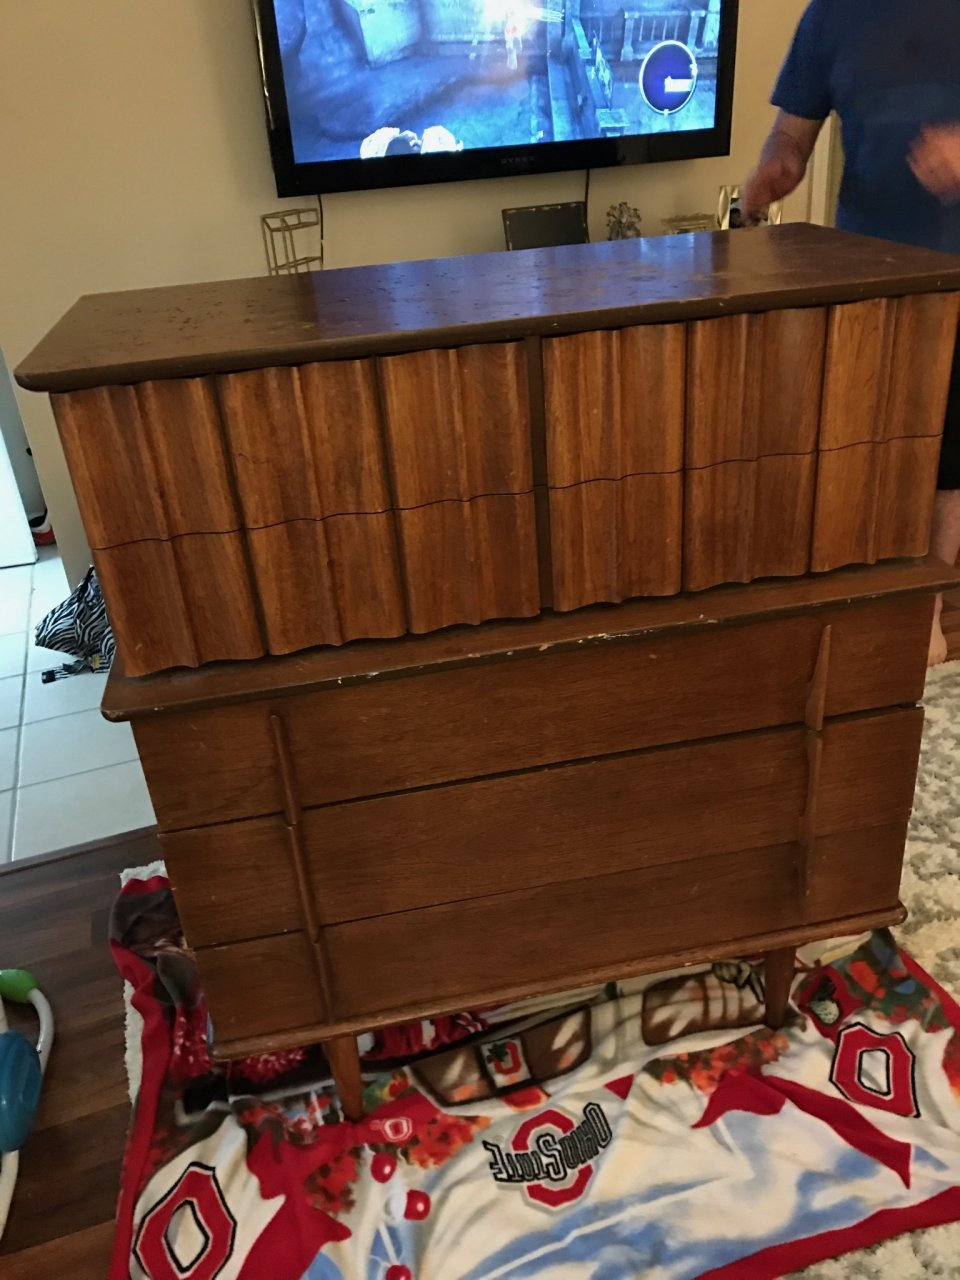 We Had Never Heard Of It So We Wanted To Know Its Value Age Etc. If Anyone  Has Any Info On It That Would Be Great. It Needs Refinished But Is Very  Sturdy.